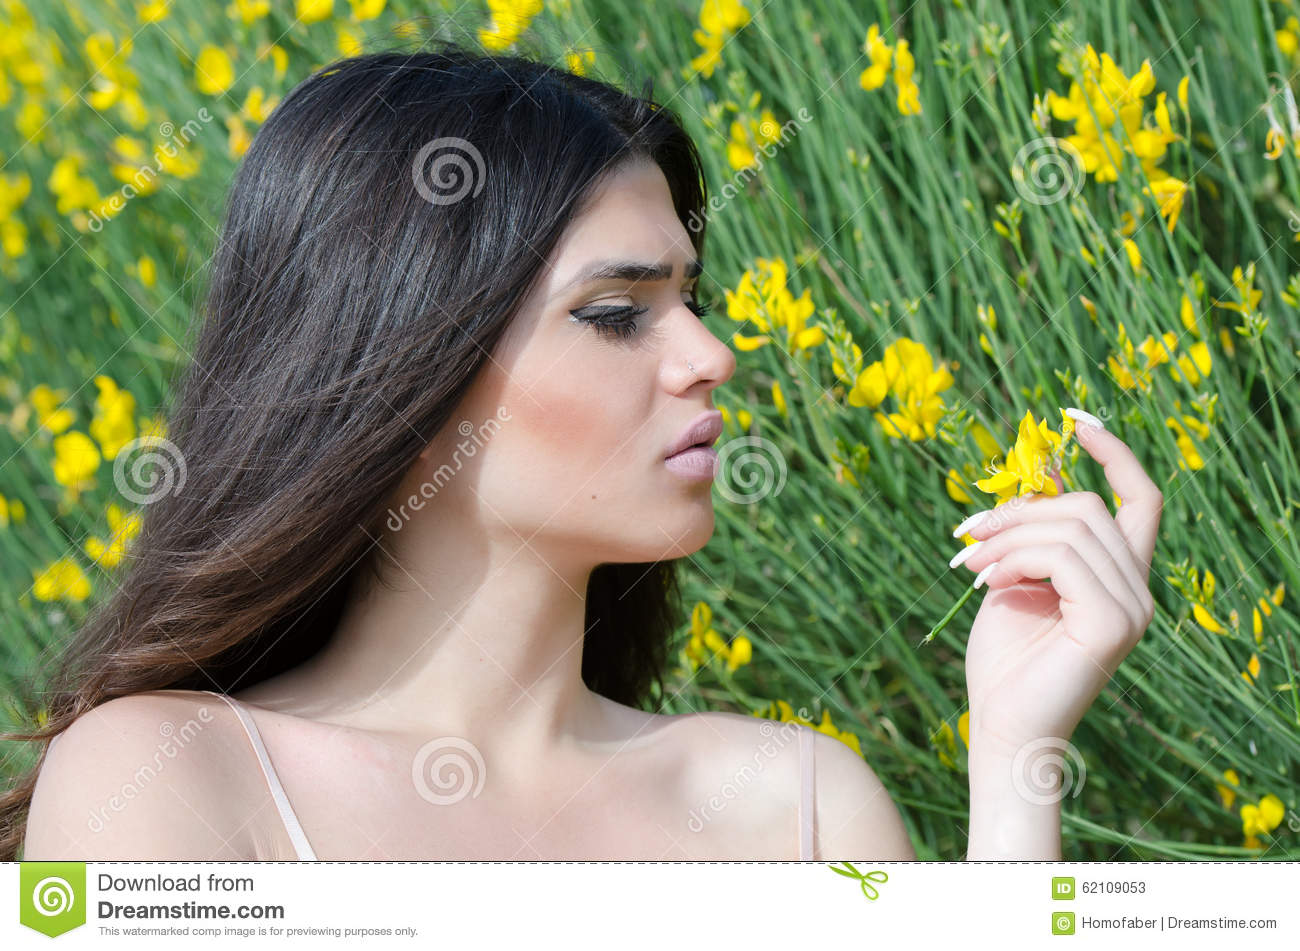 Uncategorized Good Smelling good looking lady smelling yellow flower stock image 62109053 flower